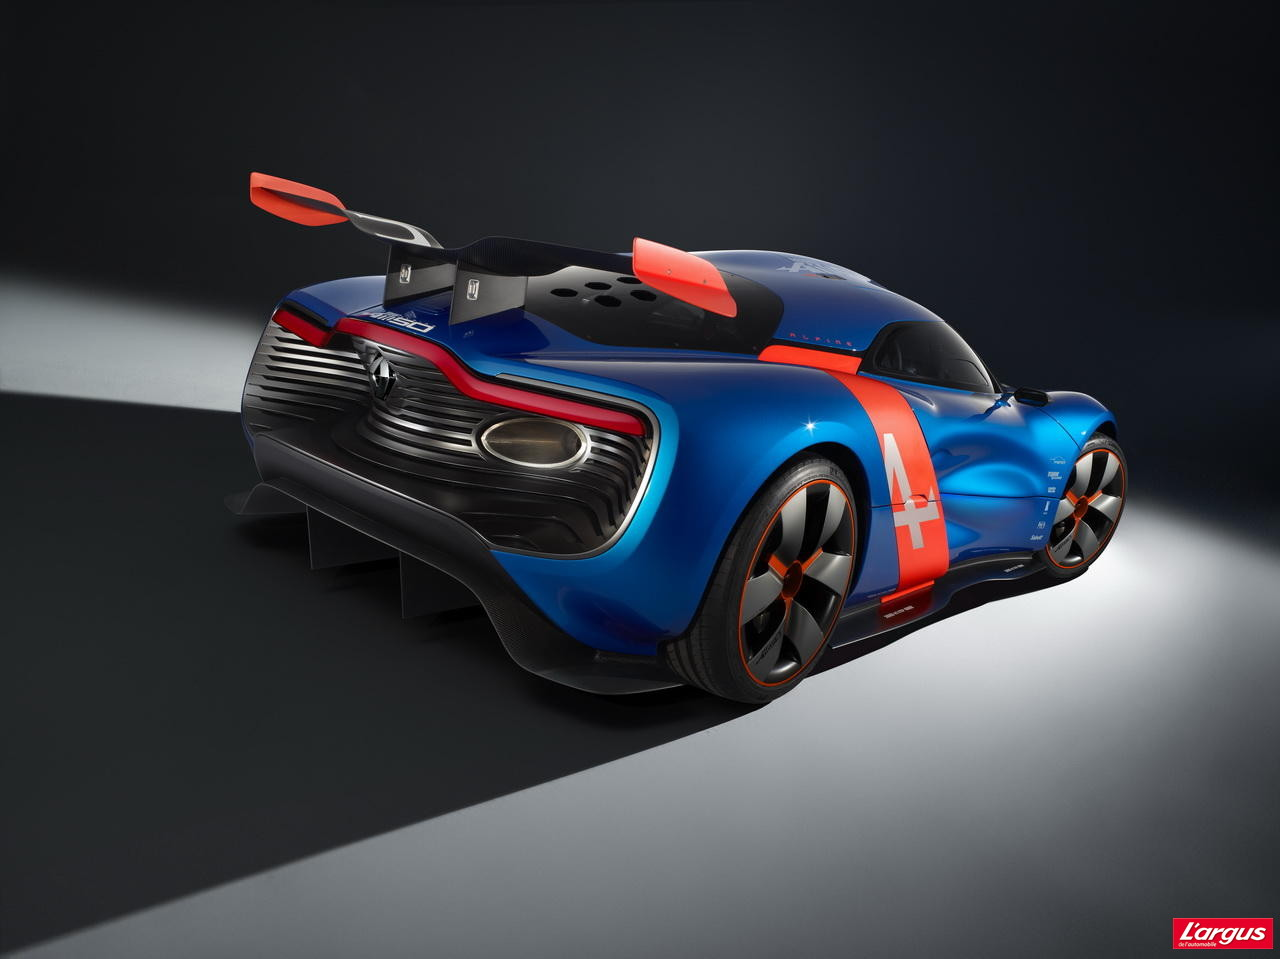 http://www.largus.fr/images/images/Renault_Alpine_A110-50_59.JPG